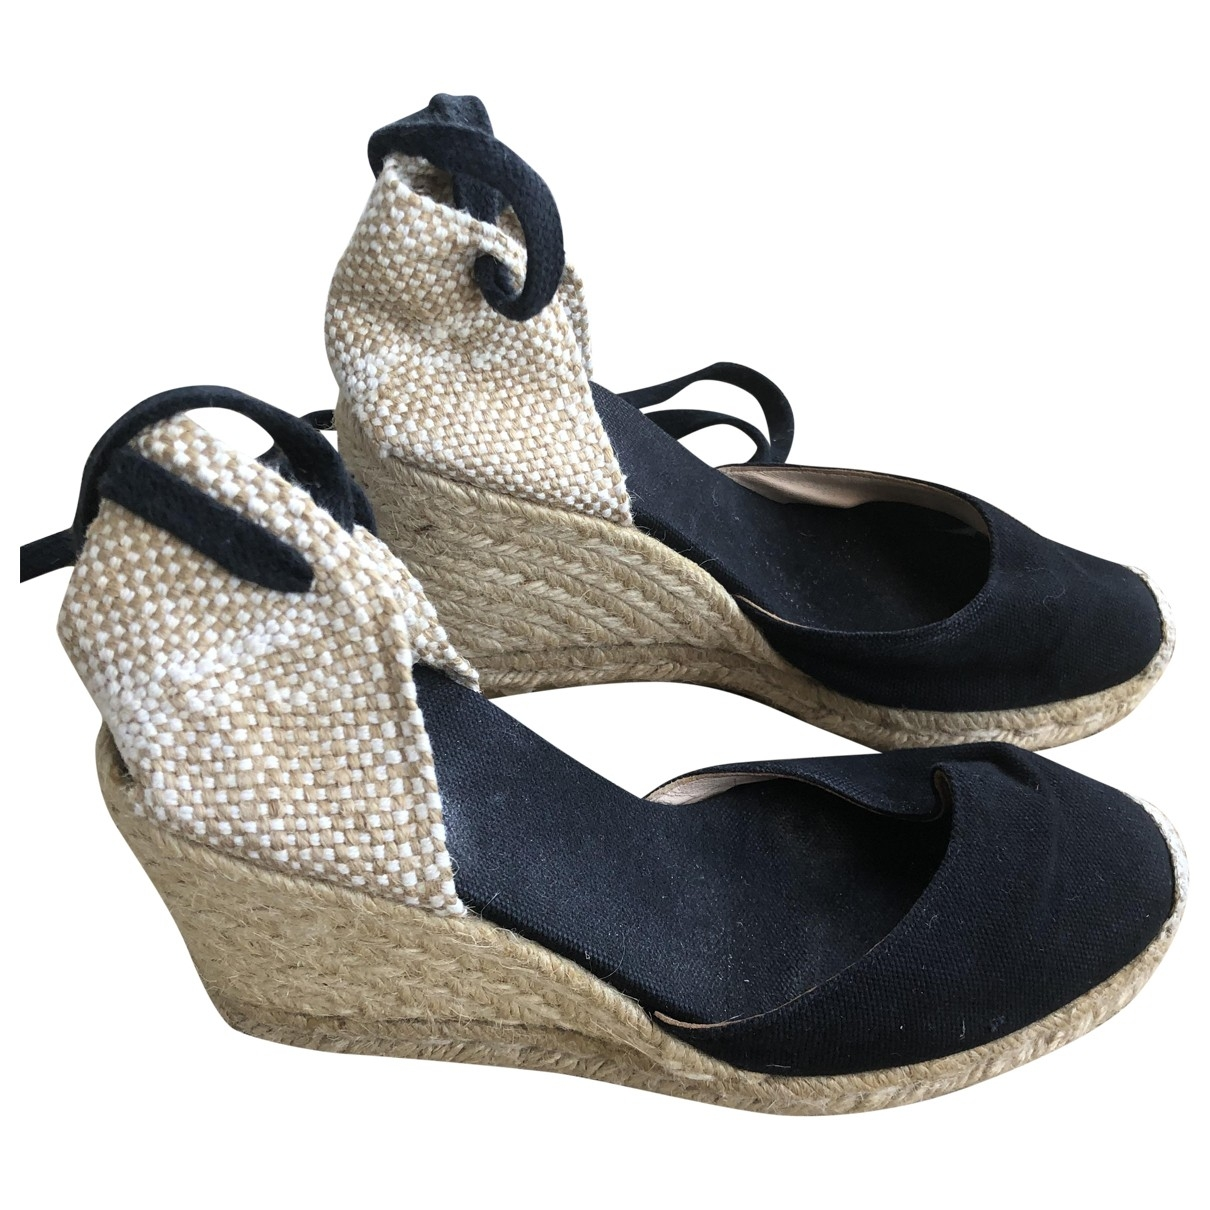 Castaner \N Black Cloth Espadrilles for Women 35 EU